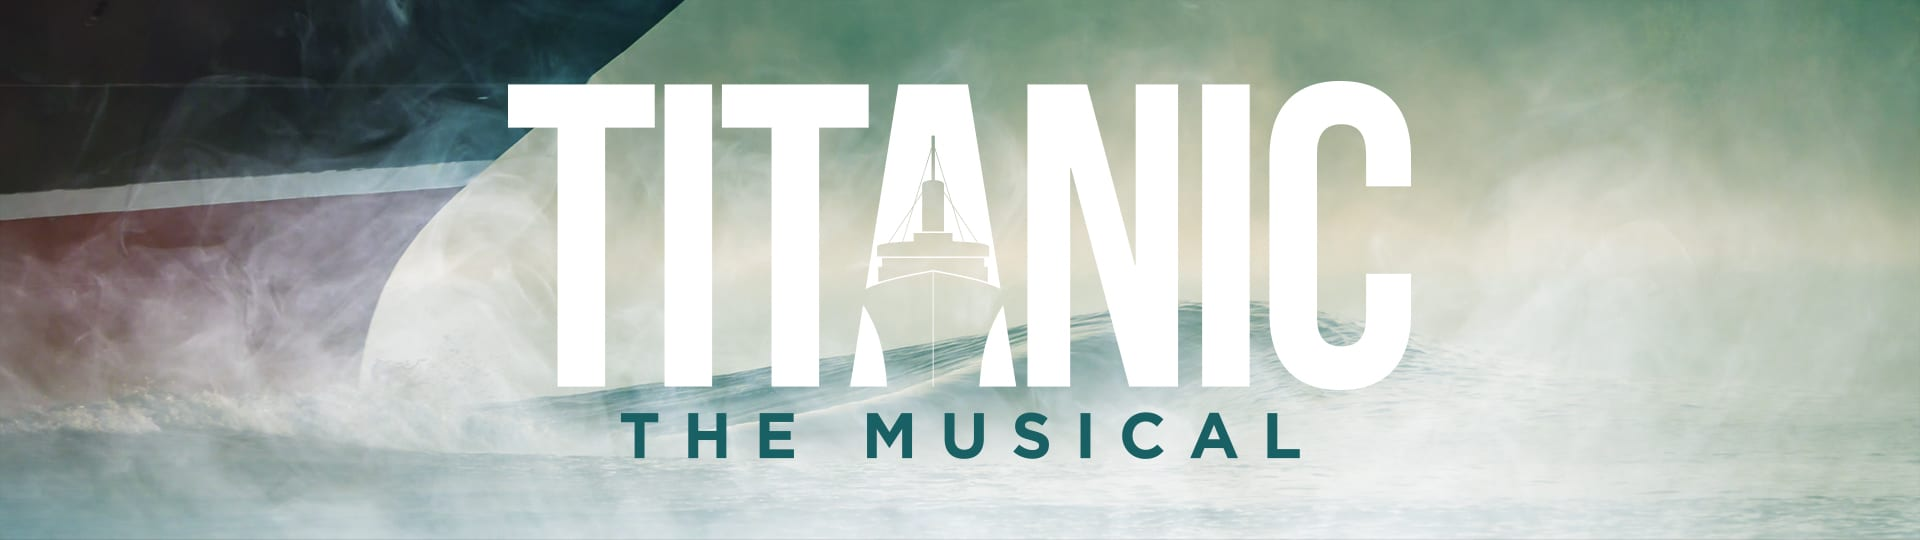 Titanic: The Musical